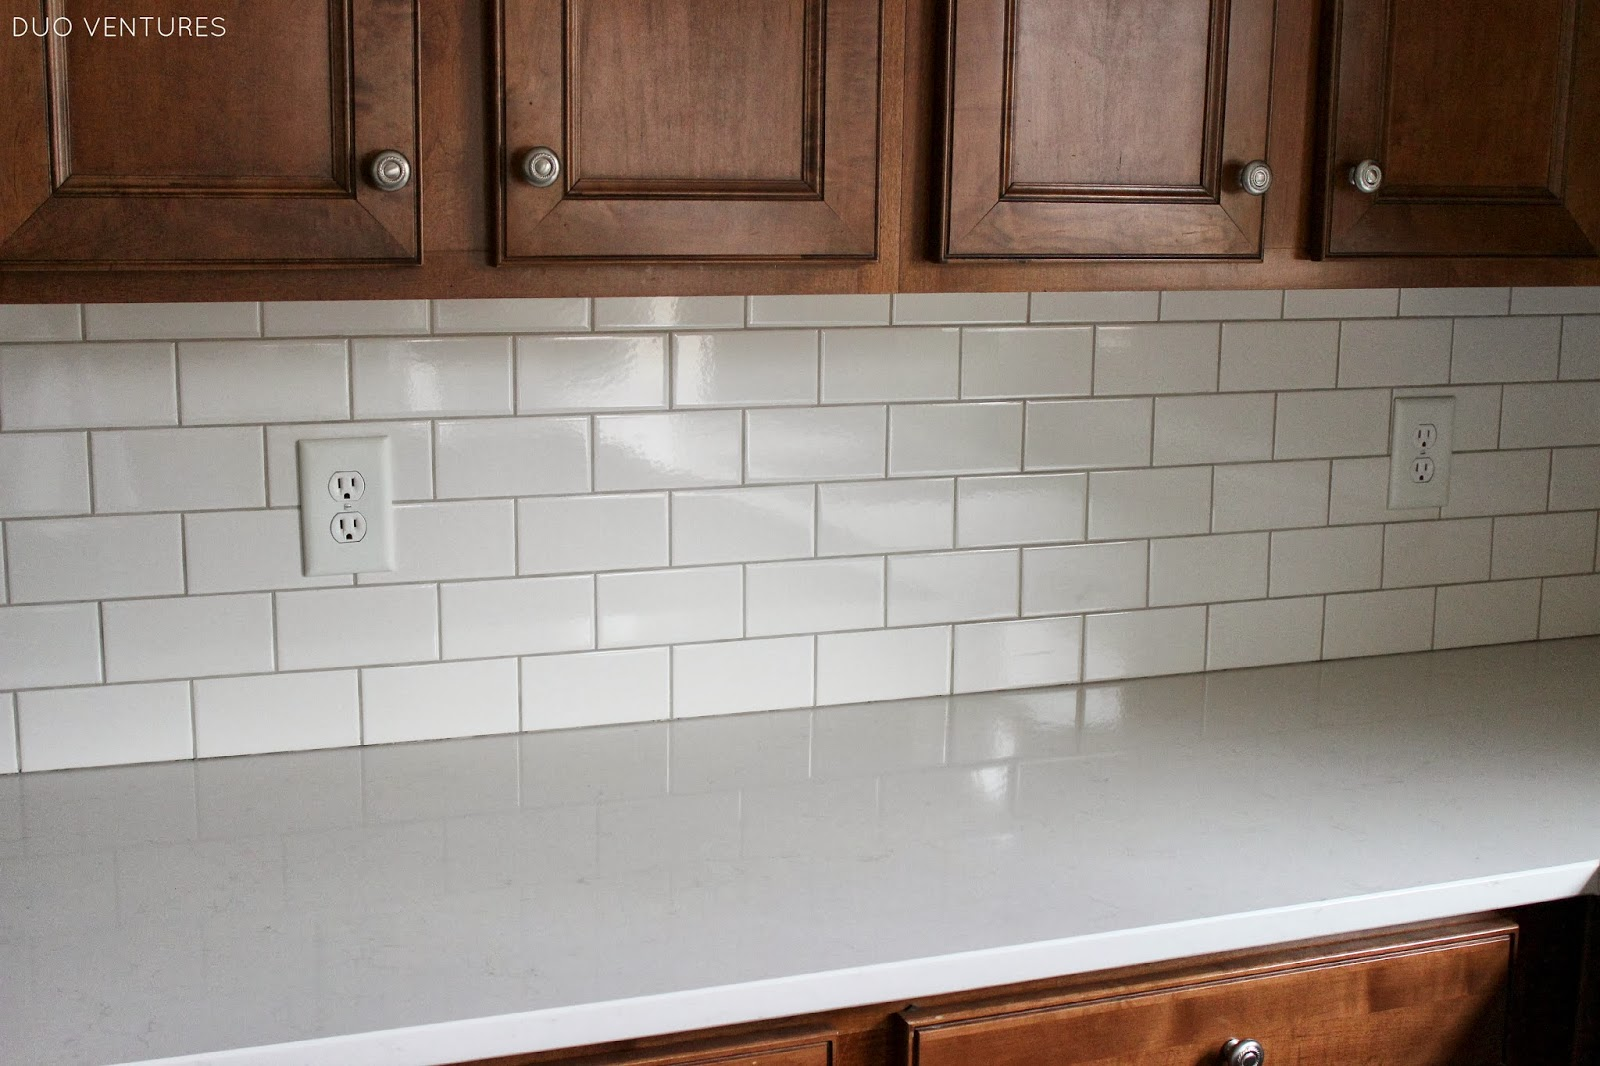 Kitchen Outlet Covers Duo Ventures Kitchen Update Grouting & Caulking Subway Tile